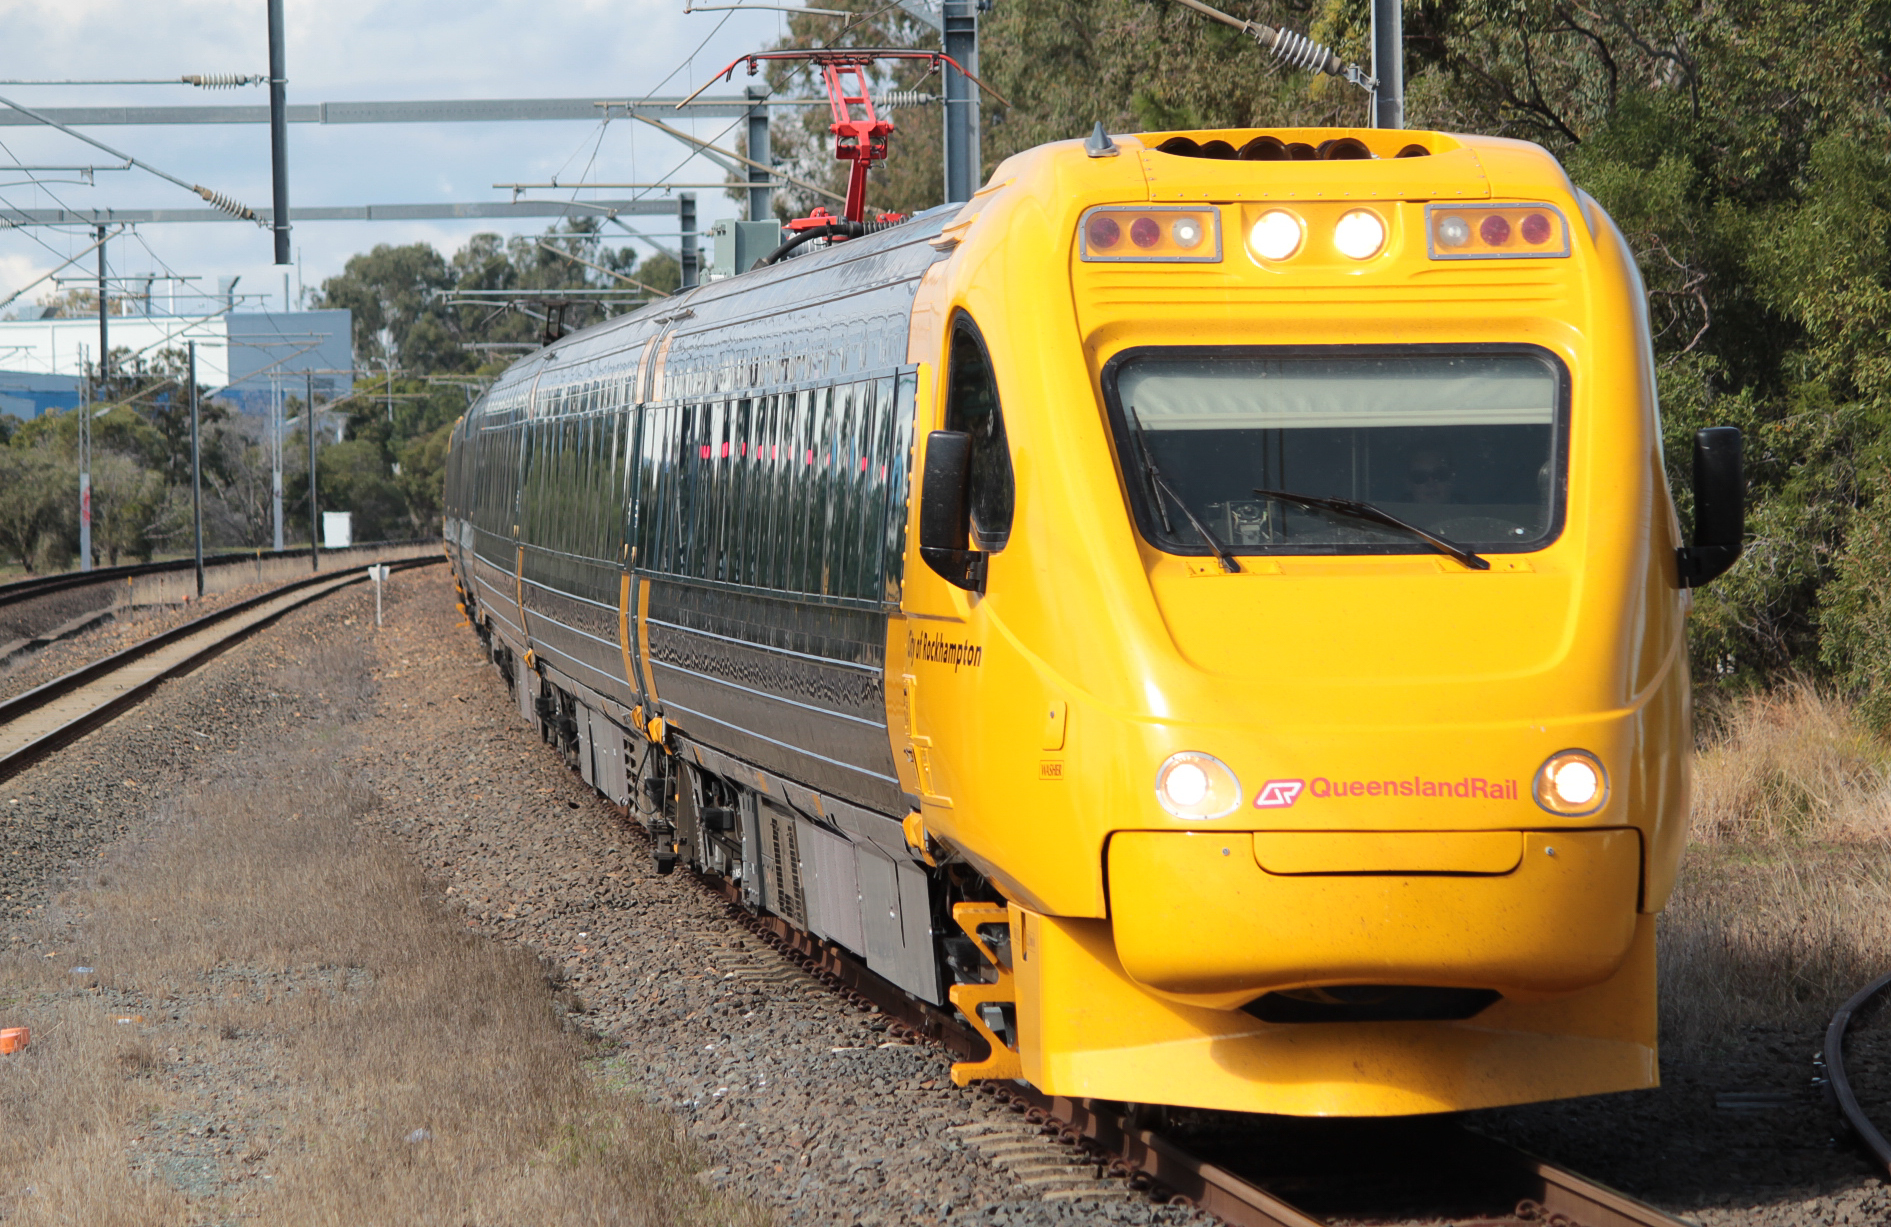 High-speed rail in Australia - Wikipedia